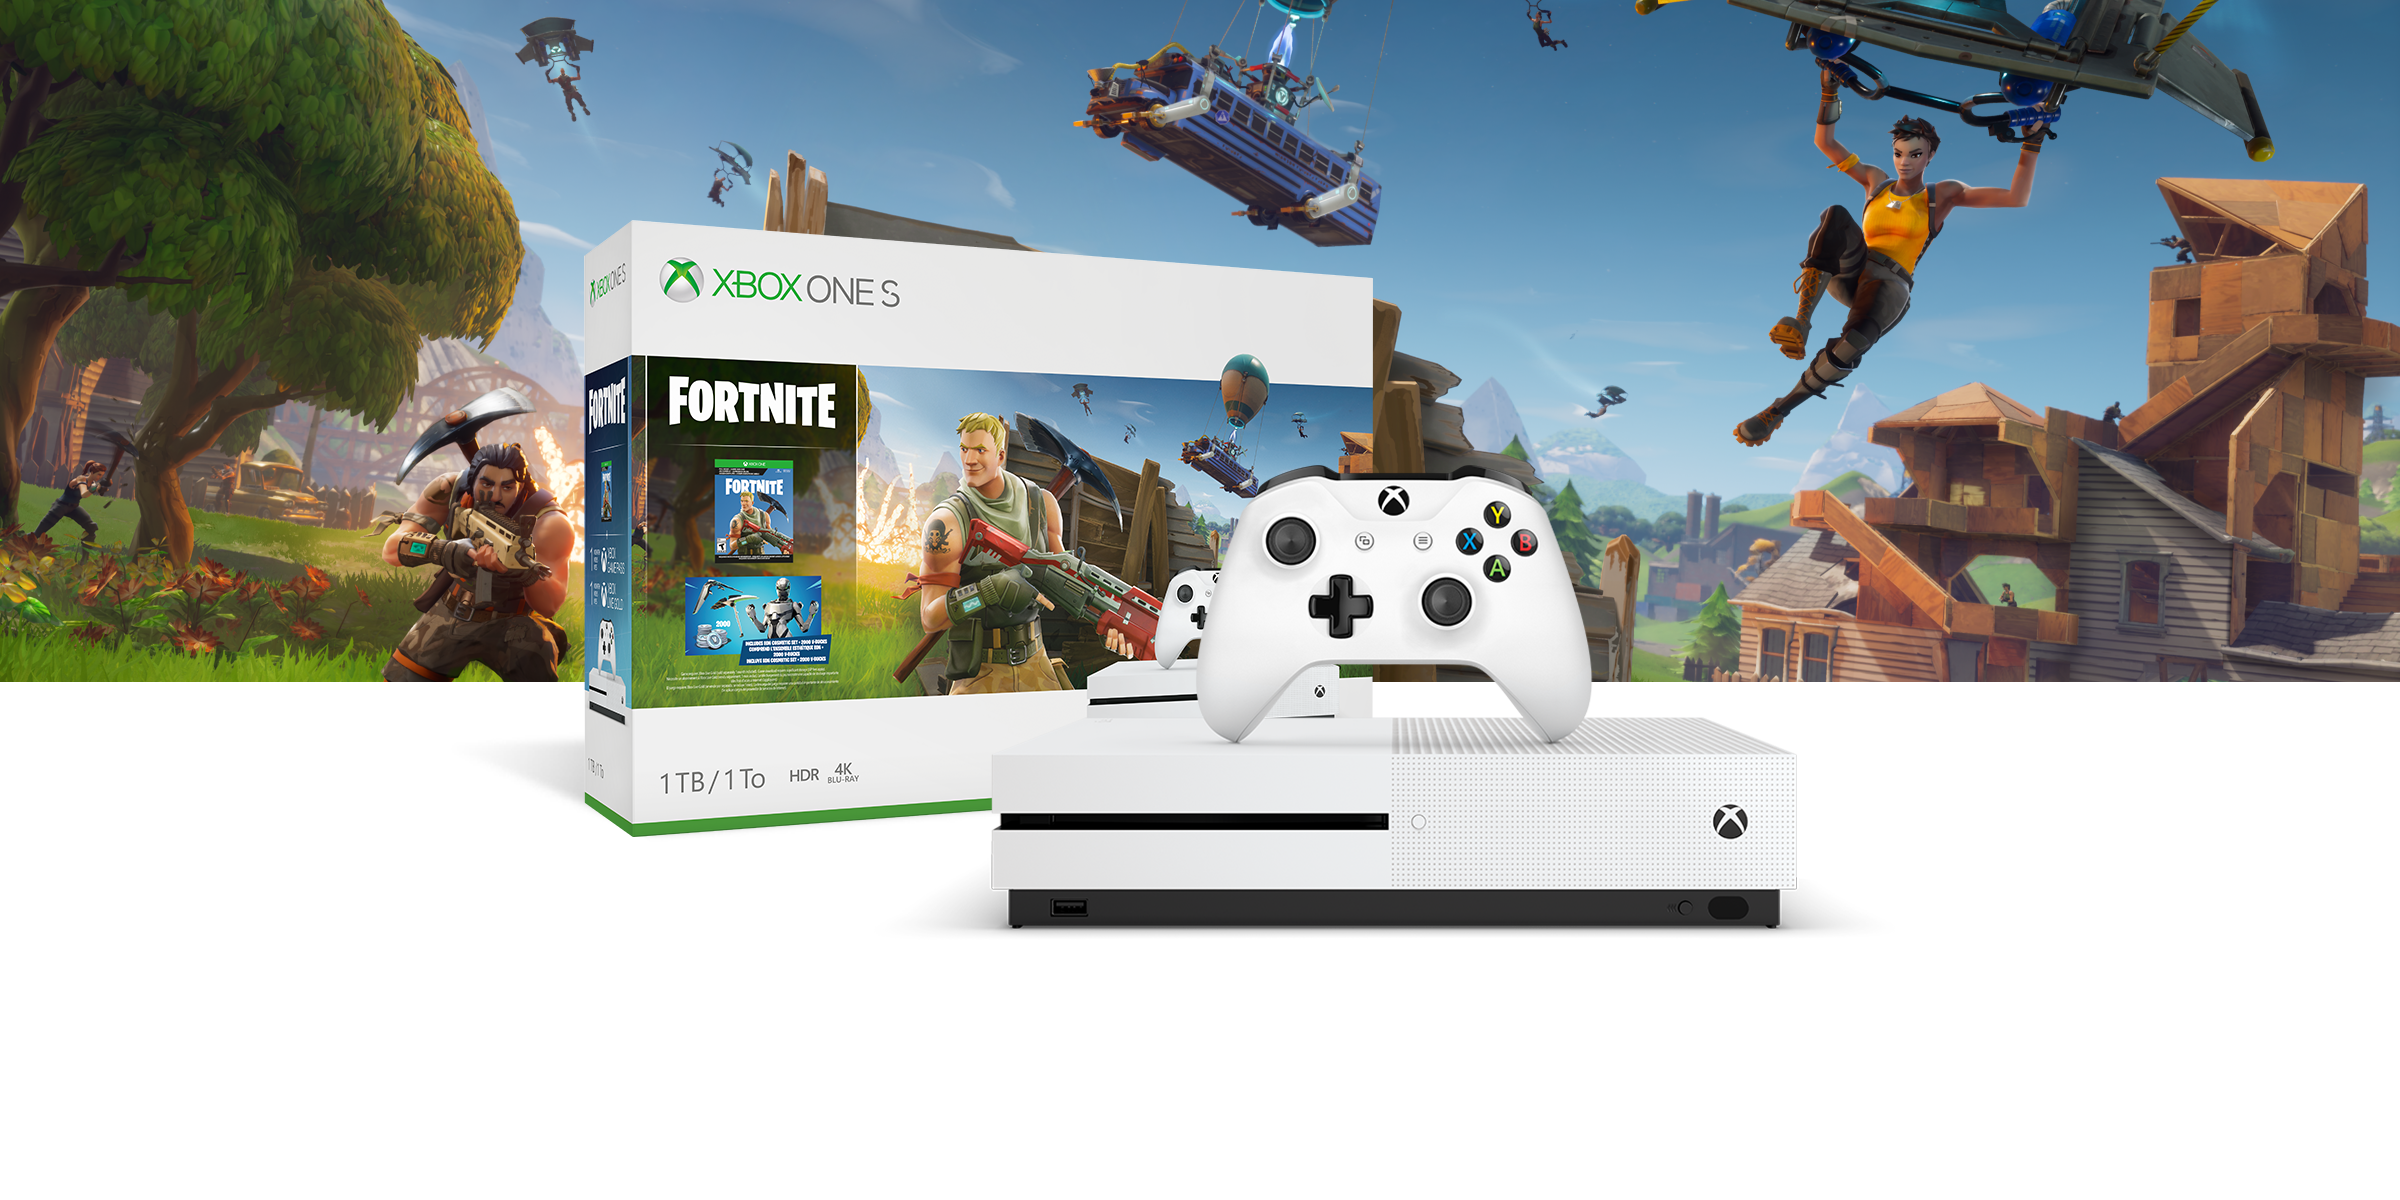 Xbox One S Fortnite Bundle box art in front of background